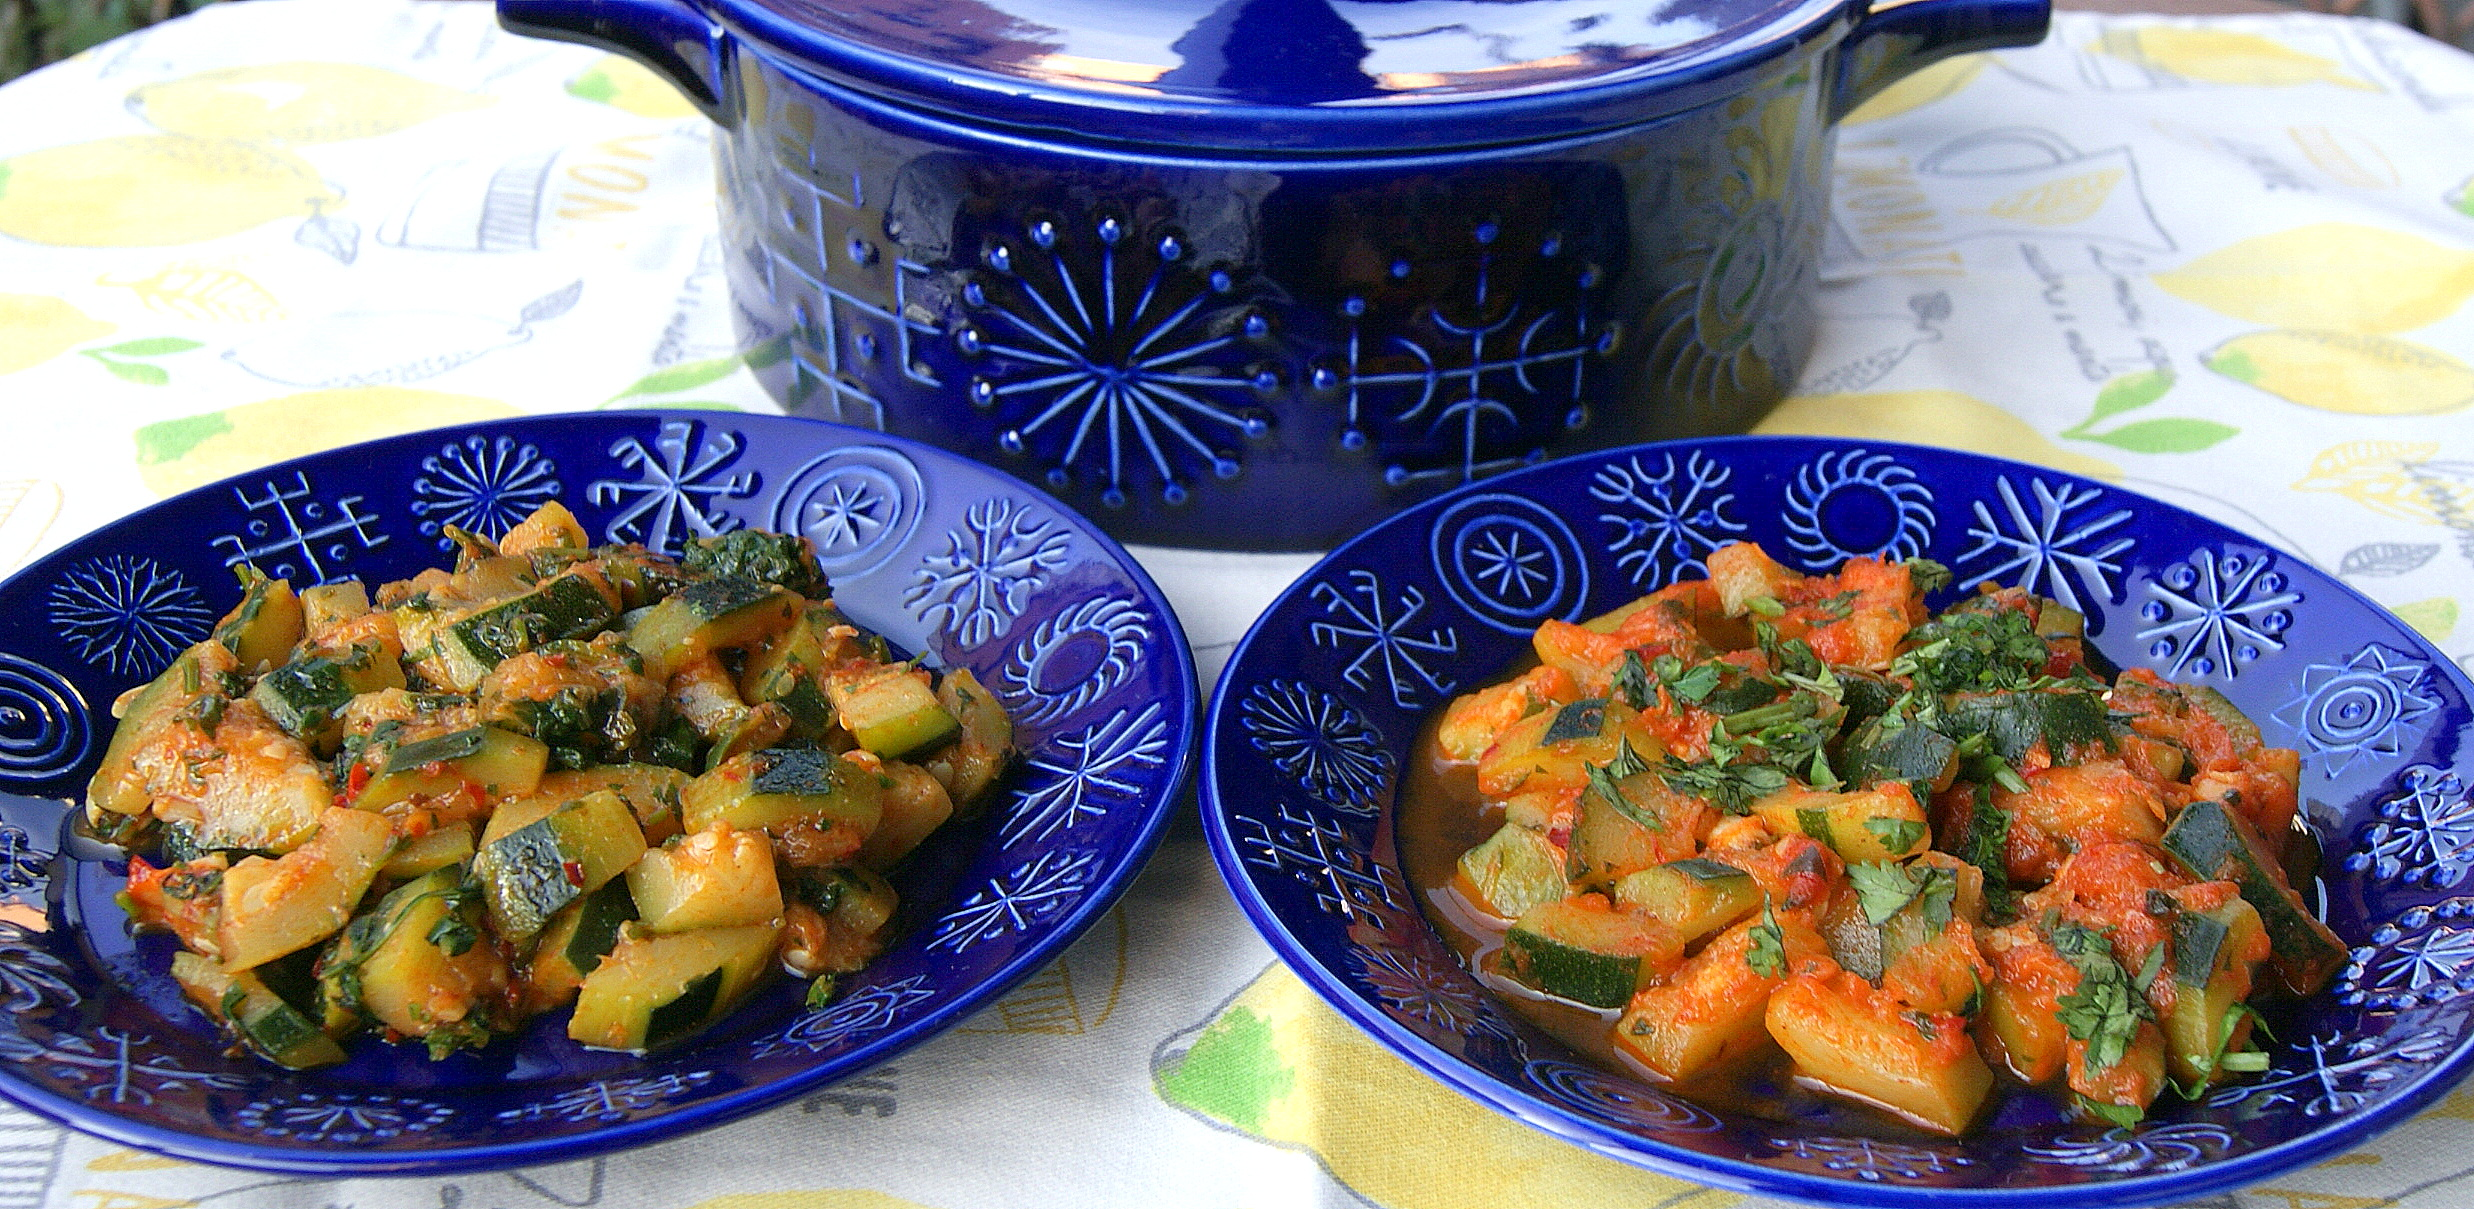 Two variations of chopped, cooked zucchini smothered with herbs and spices are shown side-by-side on decorated blue dishes.